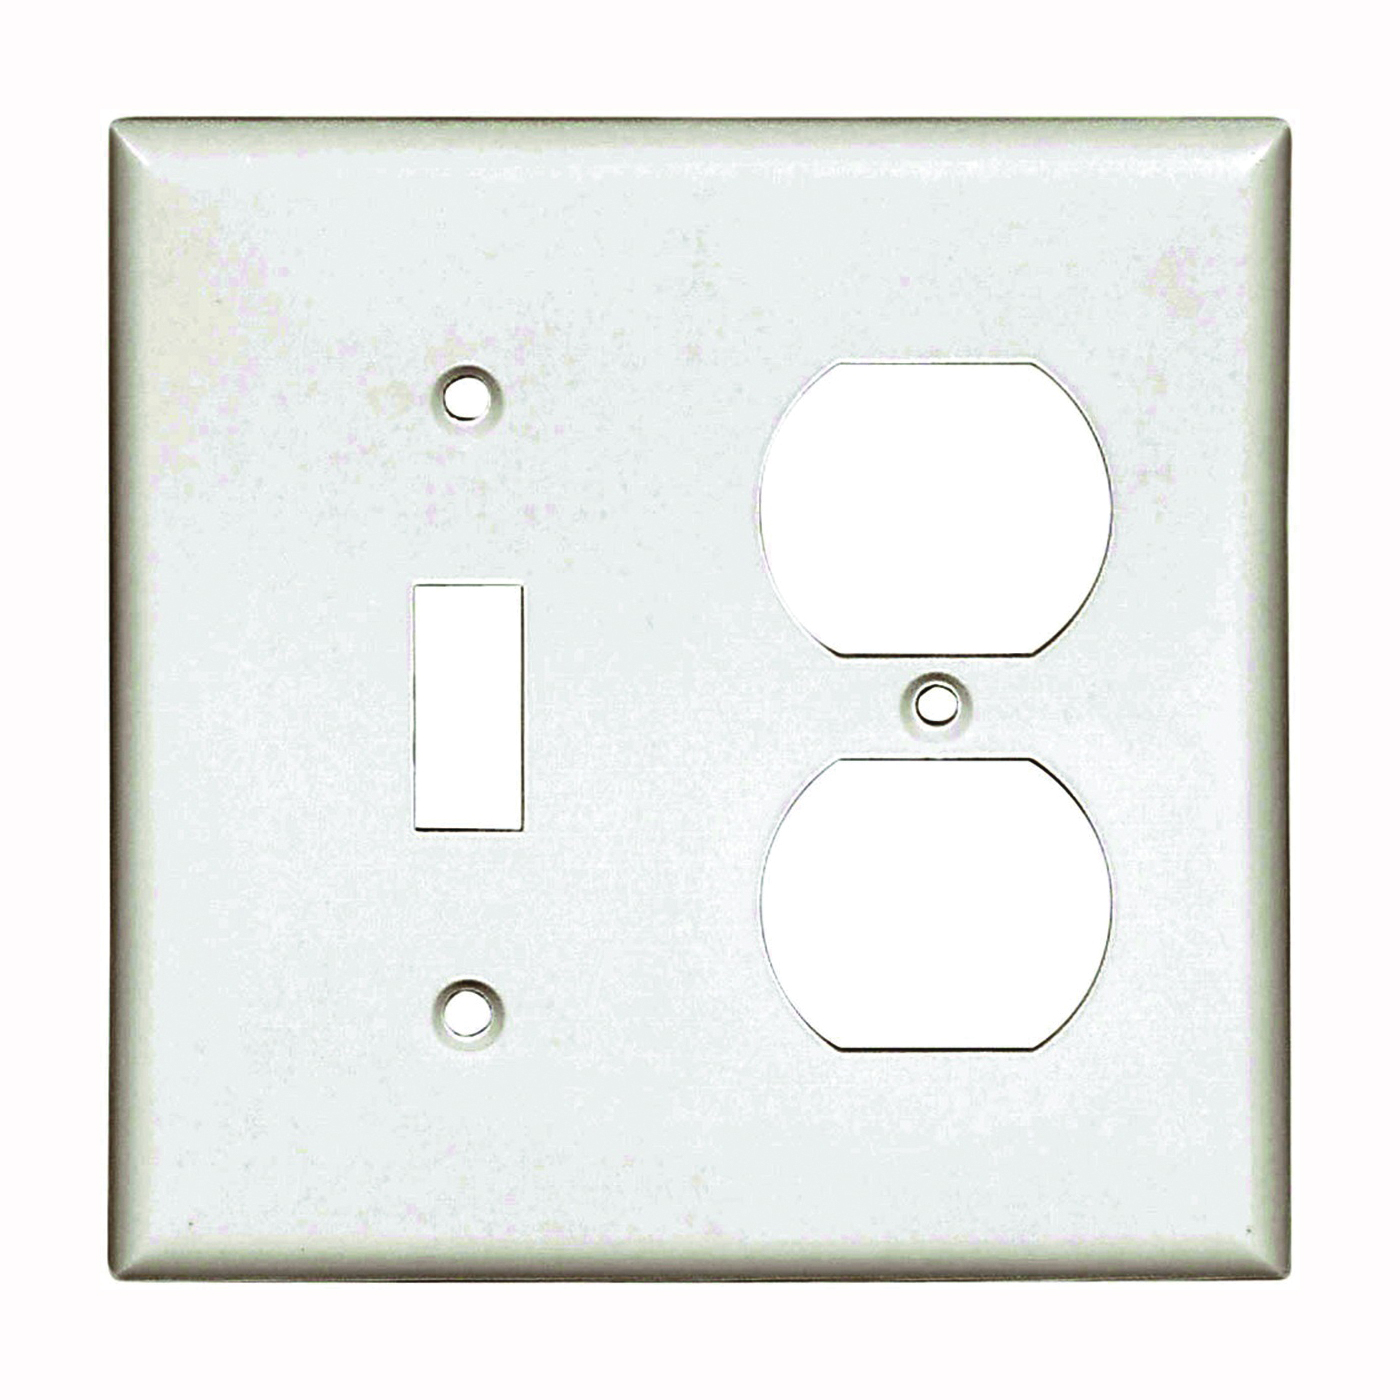 Picture of Eaton Wiring Devices 2138W-BOX Wallplate, 4-1/2 in L, 4-9/16 in W, 2-Gang, Thermoset, White, High-Gloss